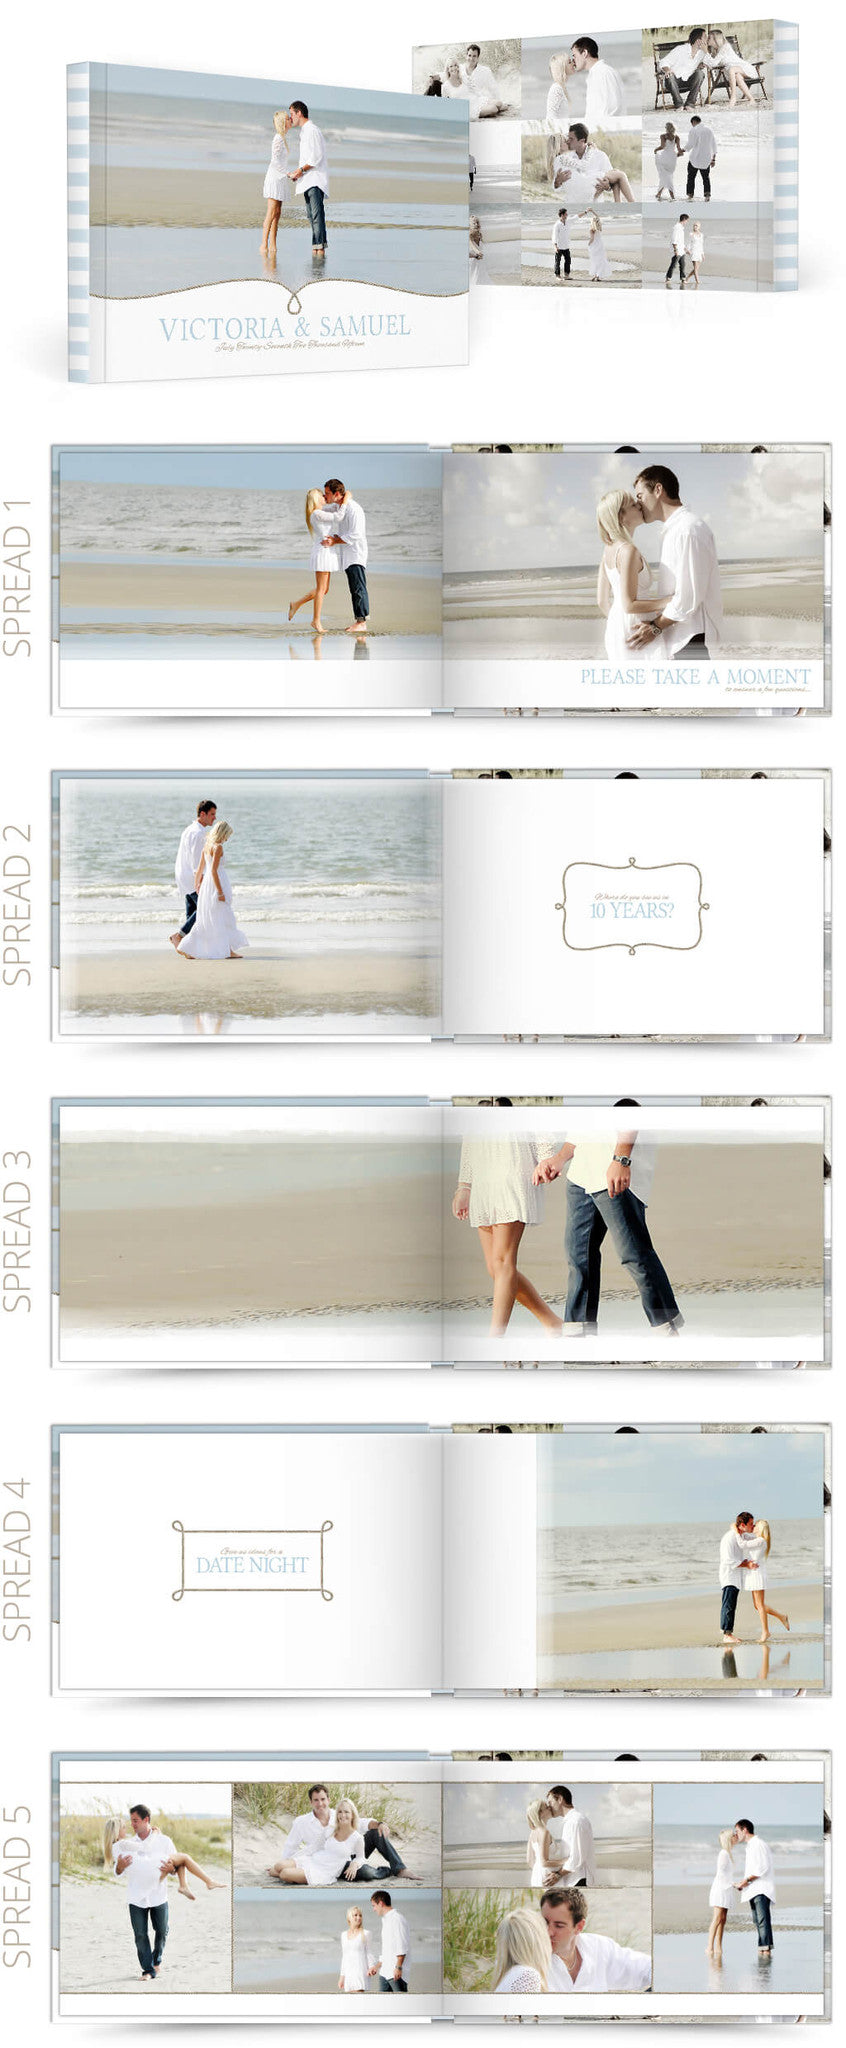 Two if by Sea Reception 12x8 Album Photoshop Templates